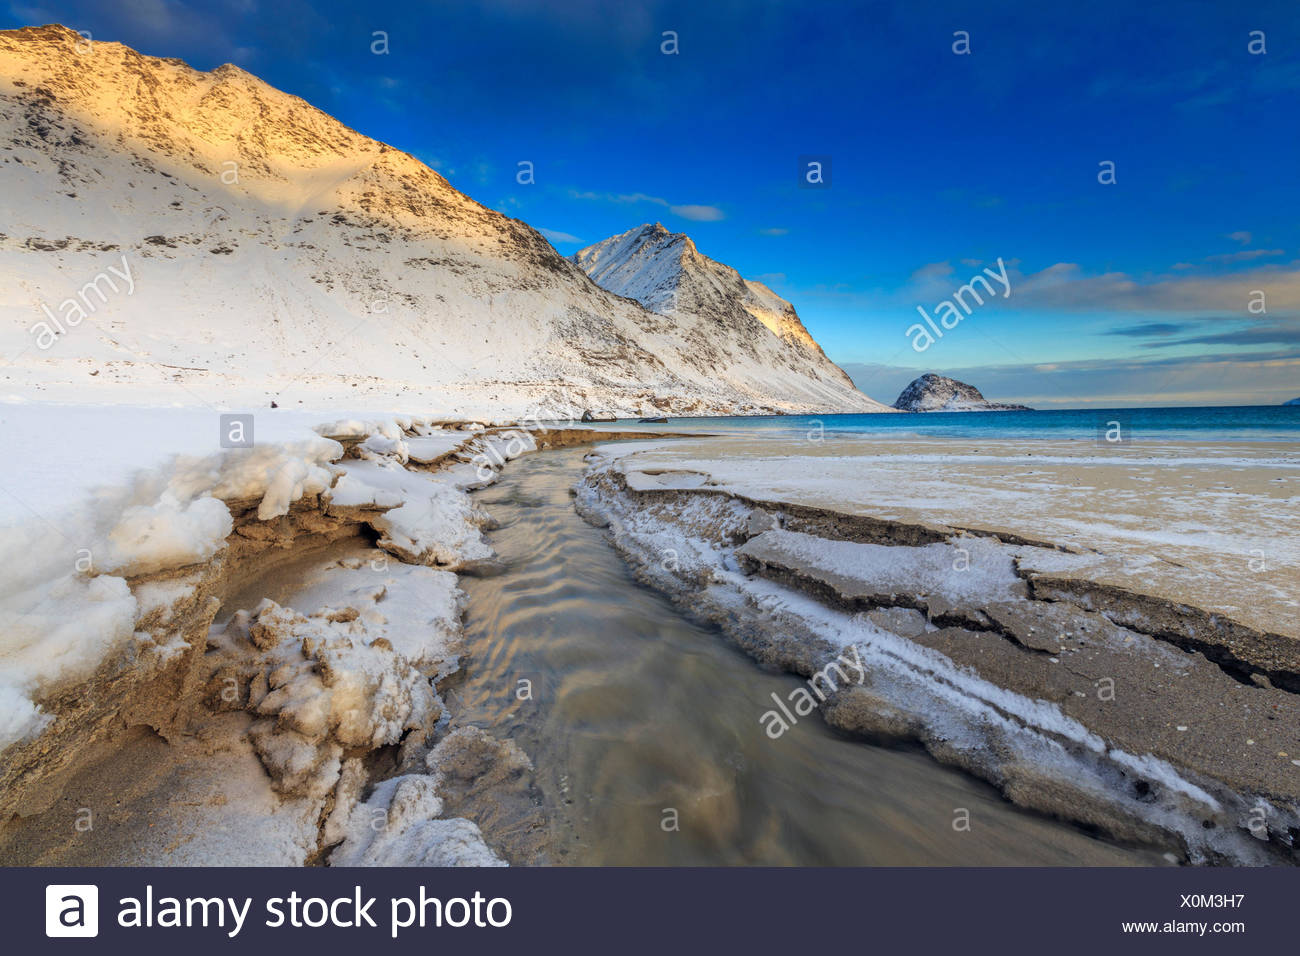 The golden sunrise illuminates the snowy peaks. Haukland Lofoten Islands Norway Europe - Stock Image